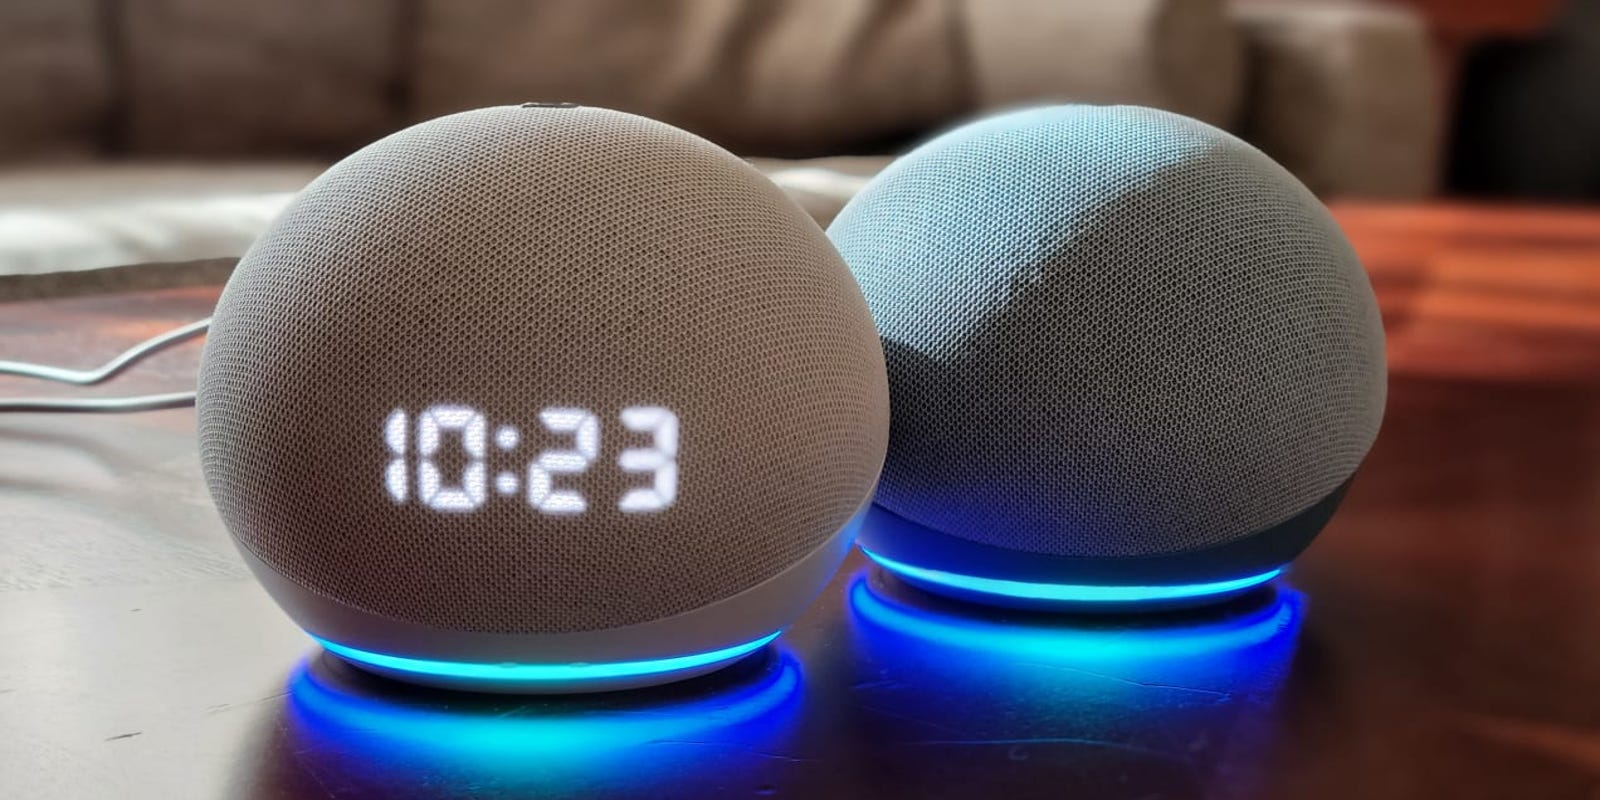 You can get the latest Echo Dot smart speaker for a steal right now – USA TODAY